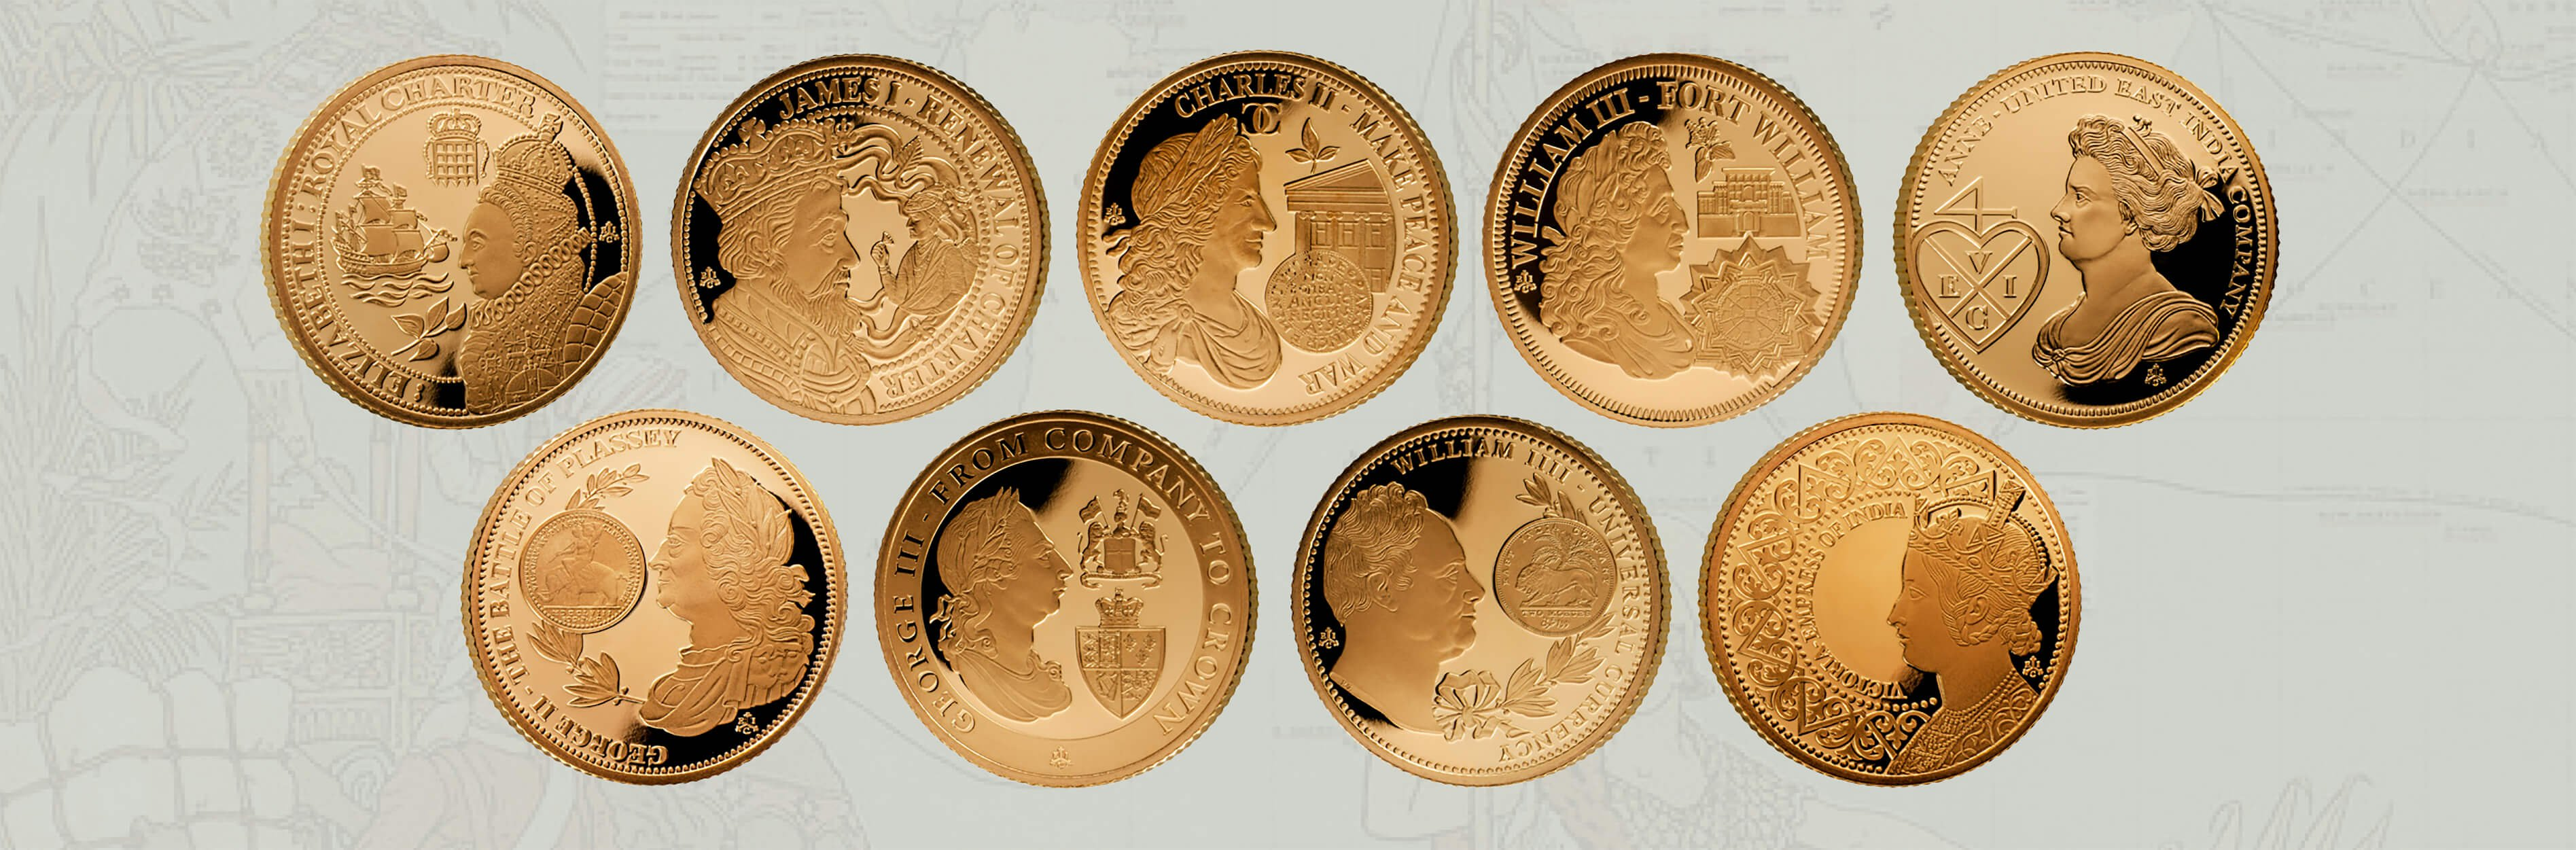 Empire Coin Timeline